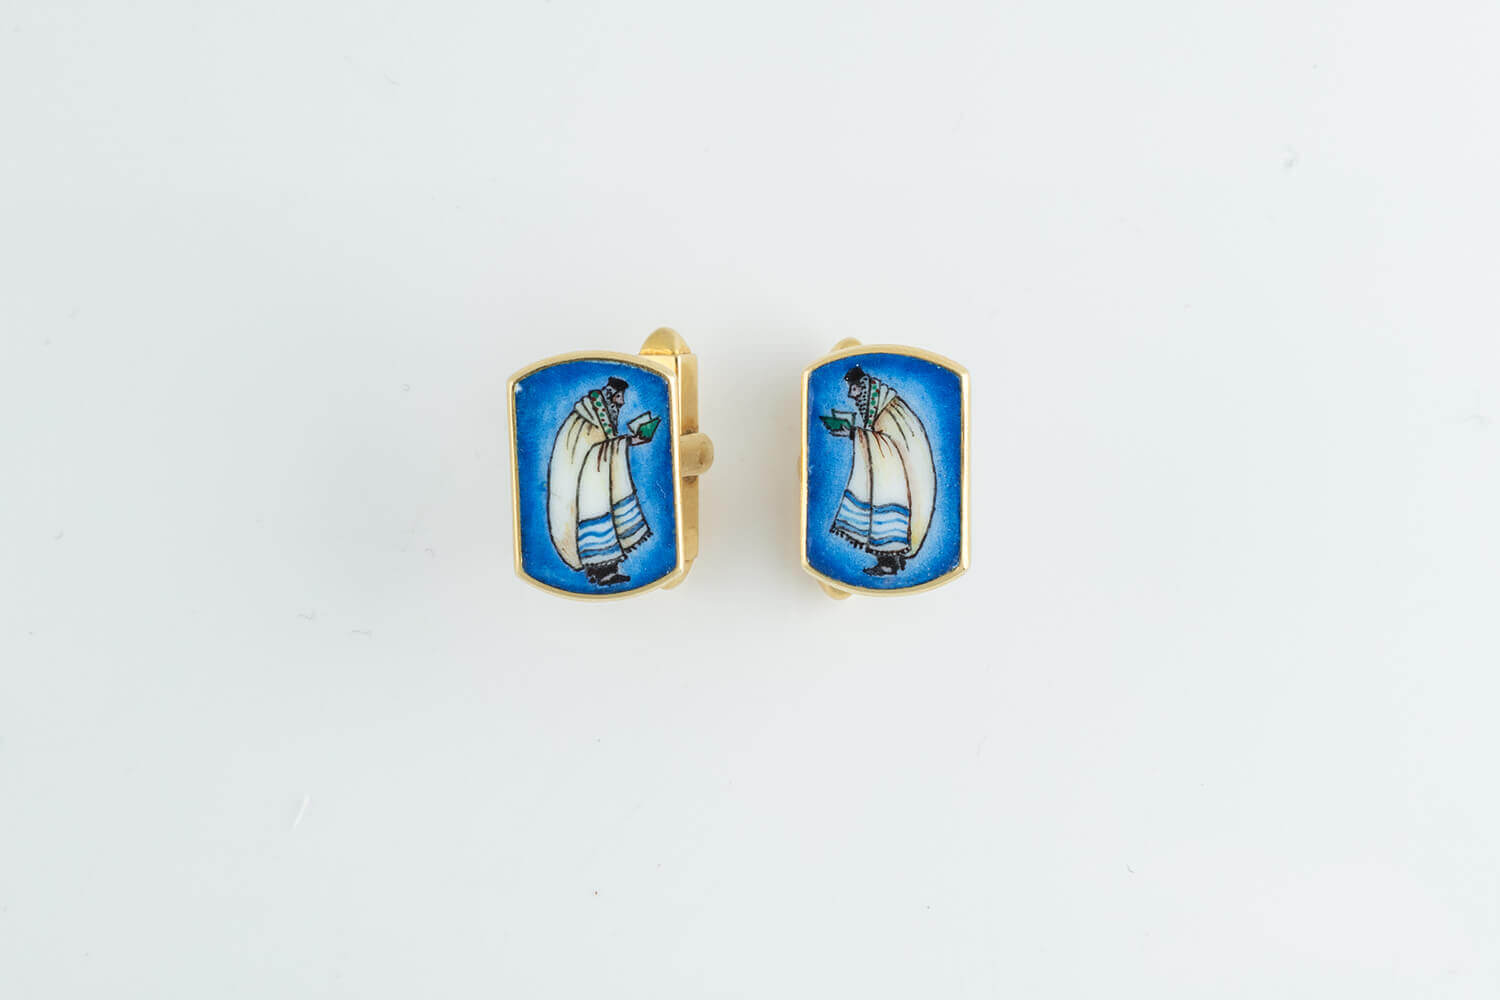 019. A PAIR OF 18K GOLD AND ENAMEL CUFFLINKS